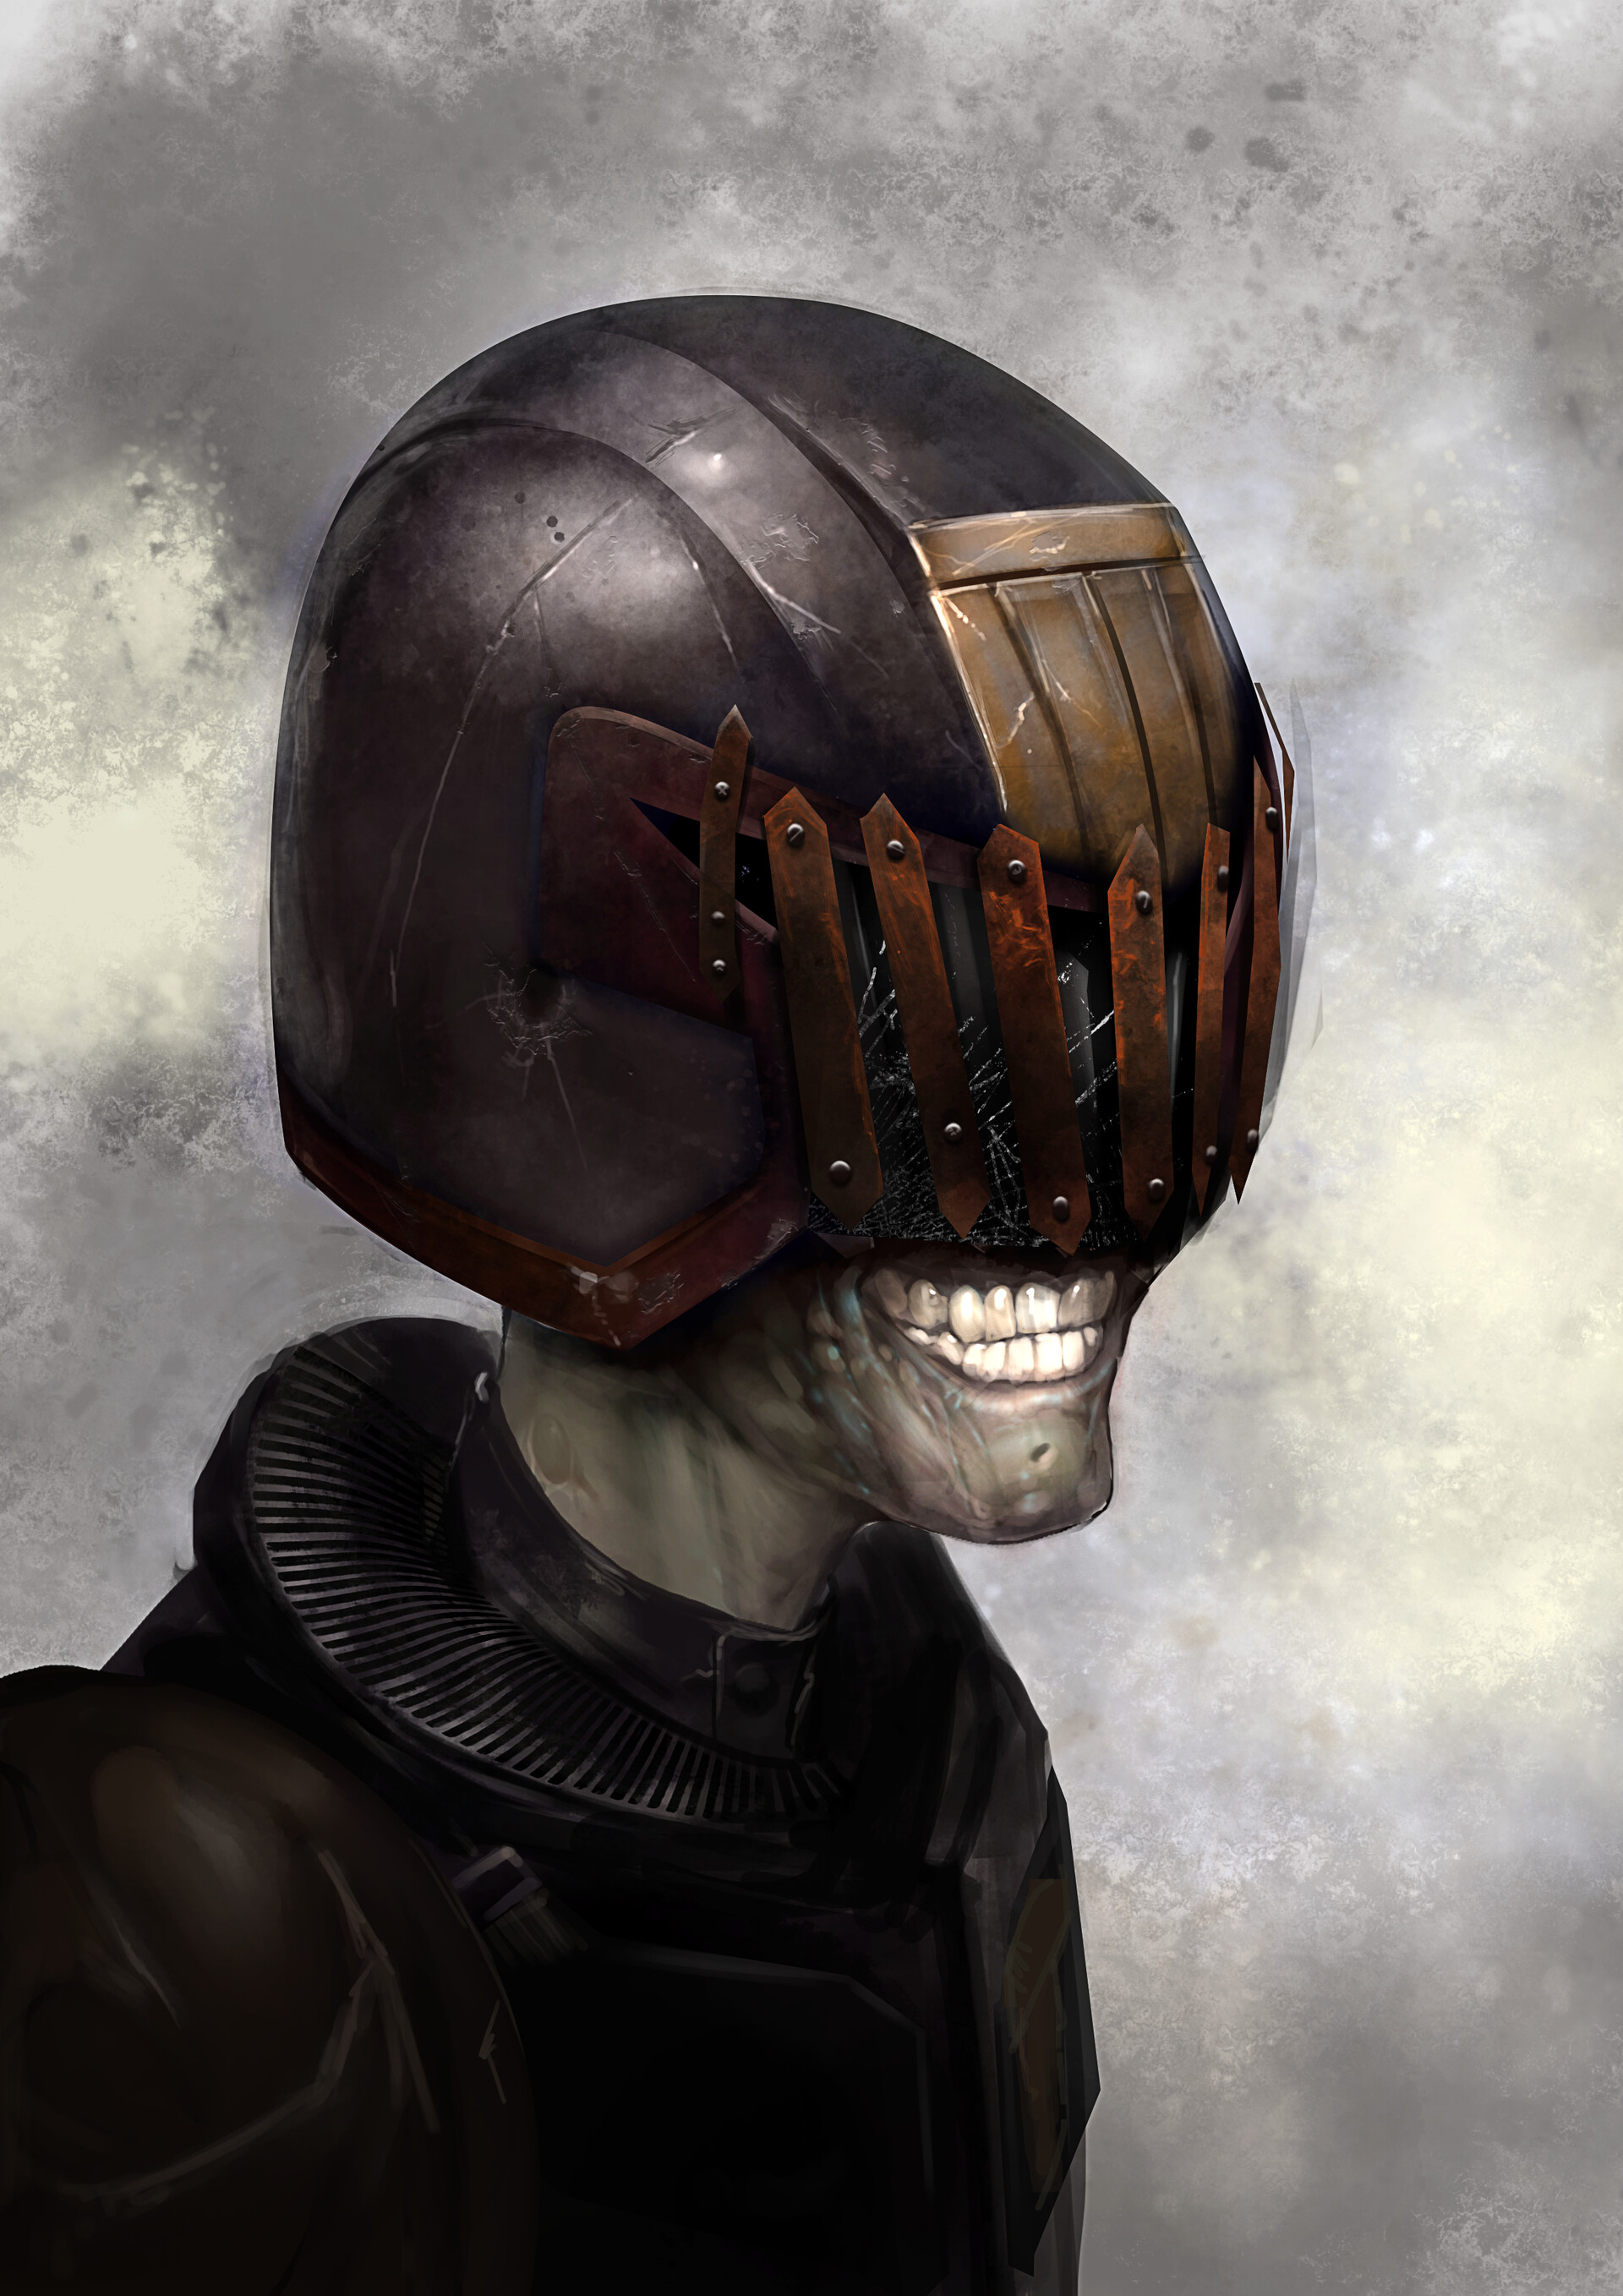 Simon lissaman movie death helmet